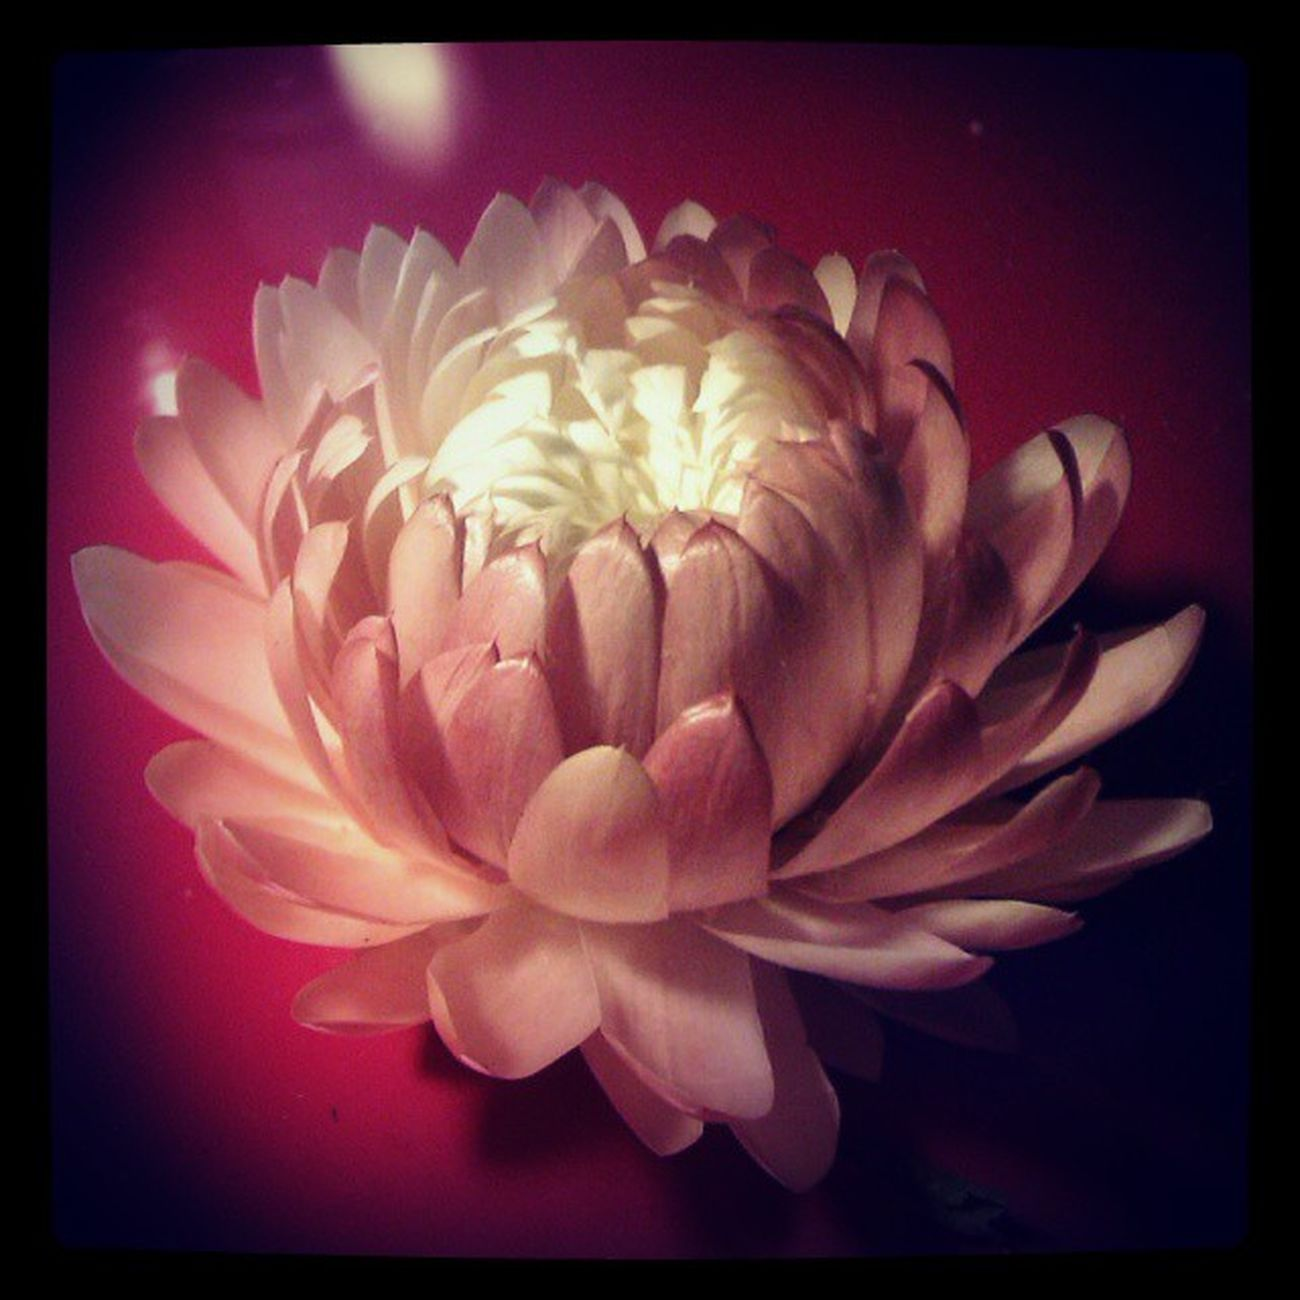 Hint of pink Everlastings Strawflower Cutflowers Bloom flower flowers petals pink red lamplight boredom igers instadaily nice lovely